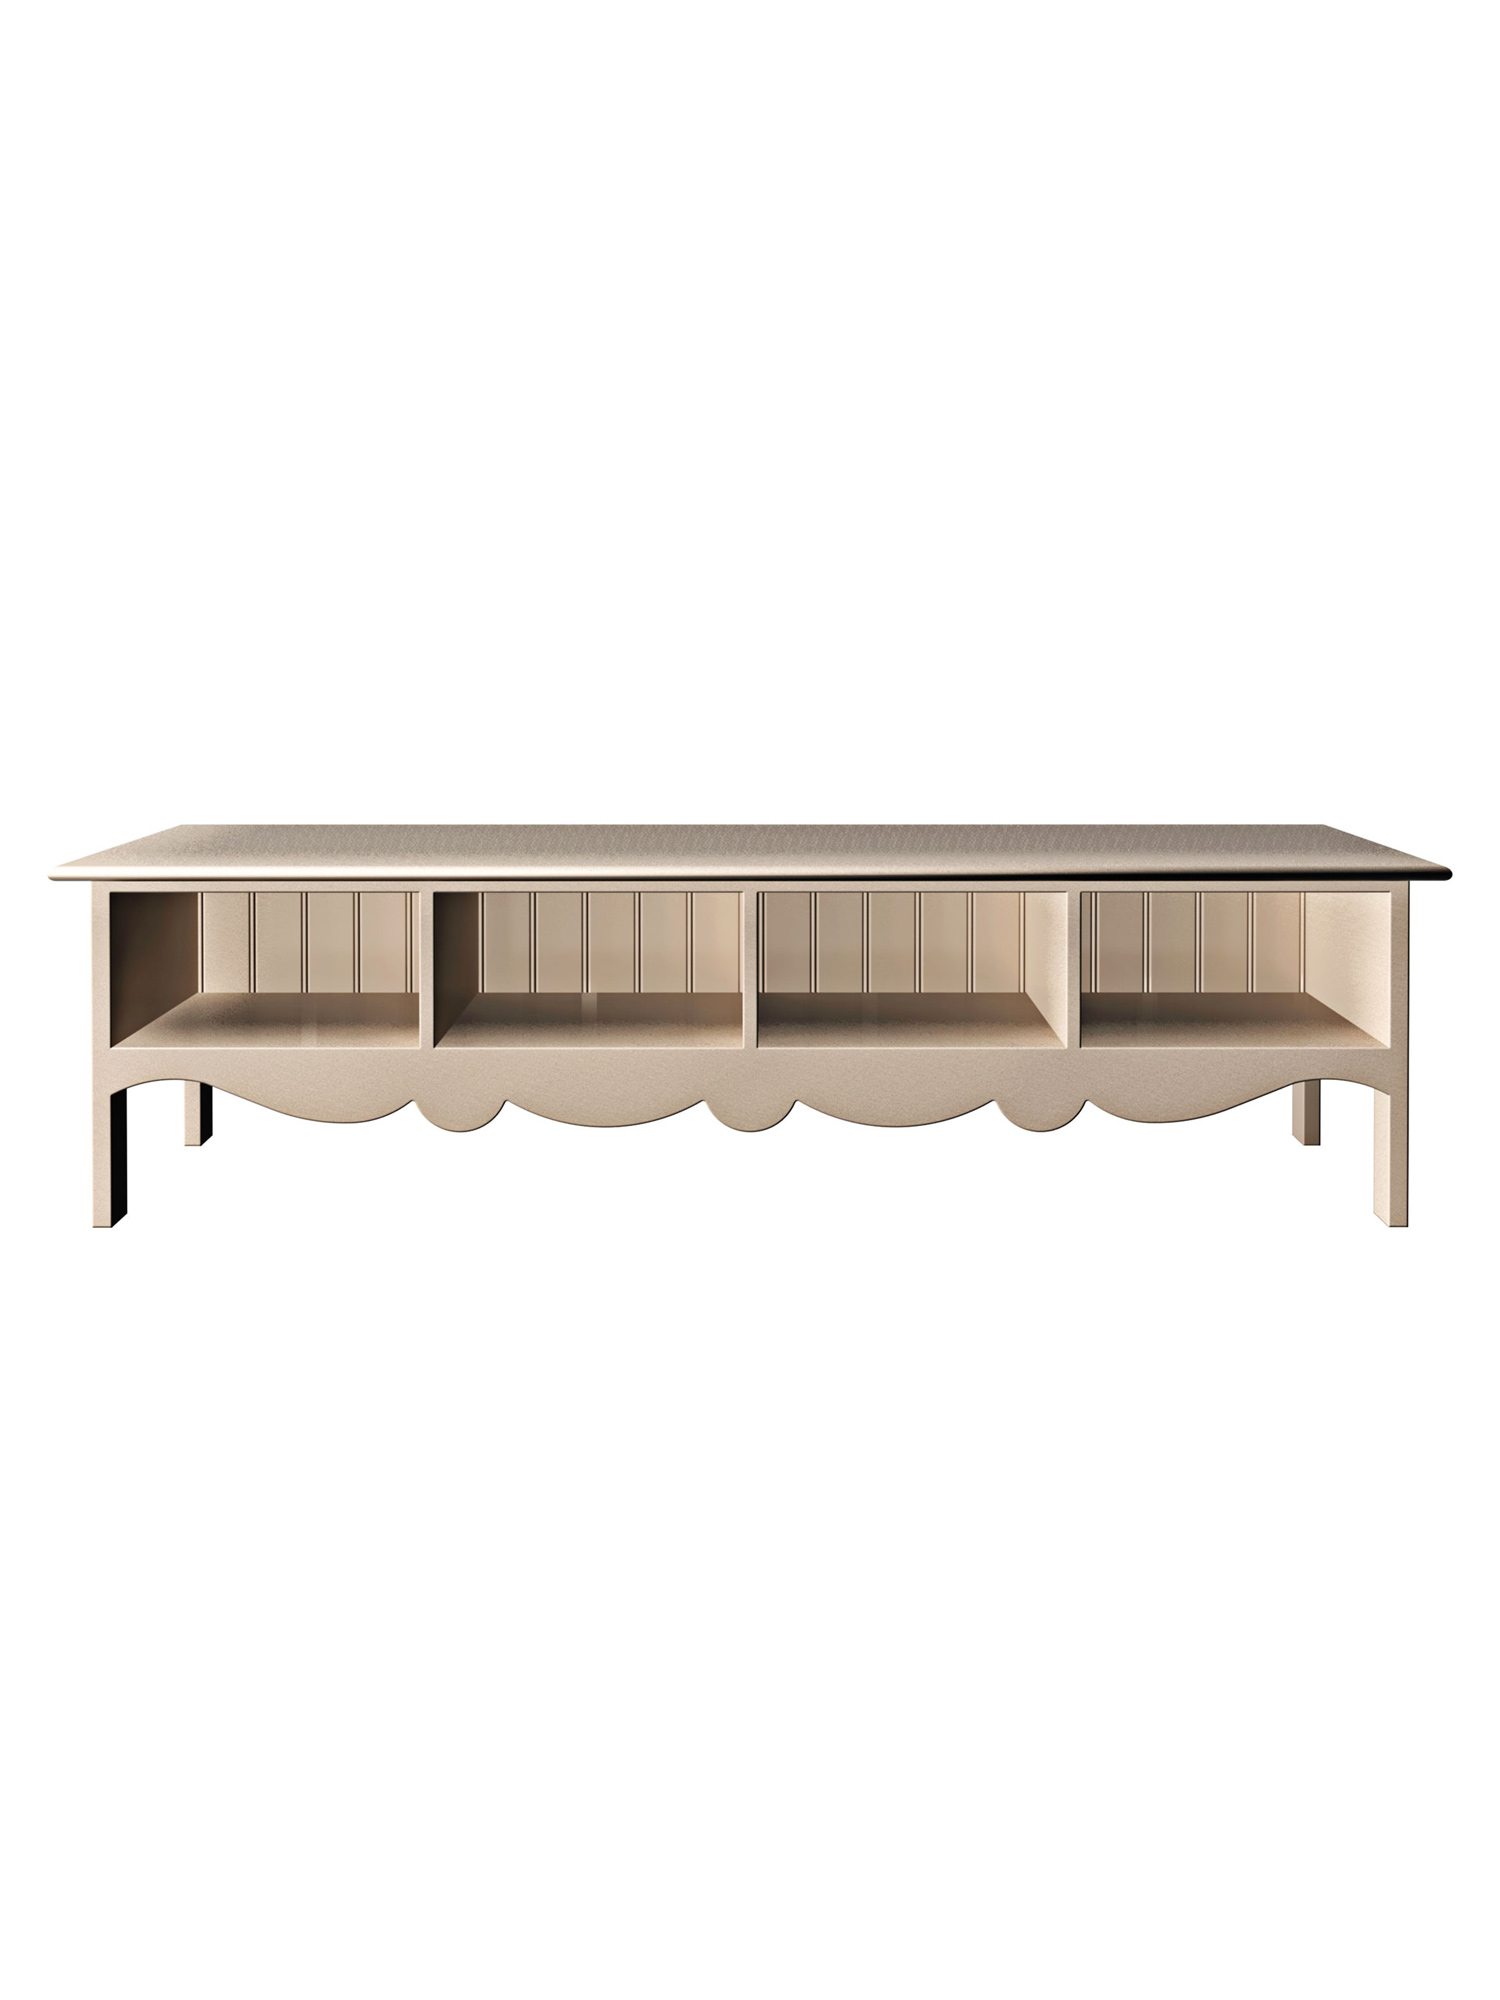 extra long outdoor storage bench